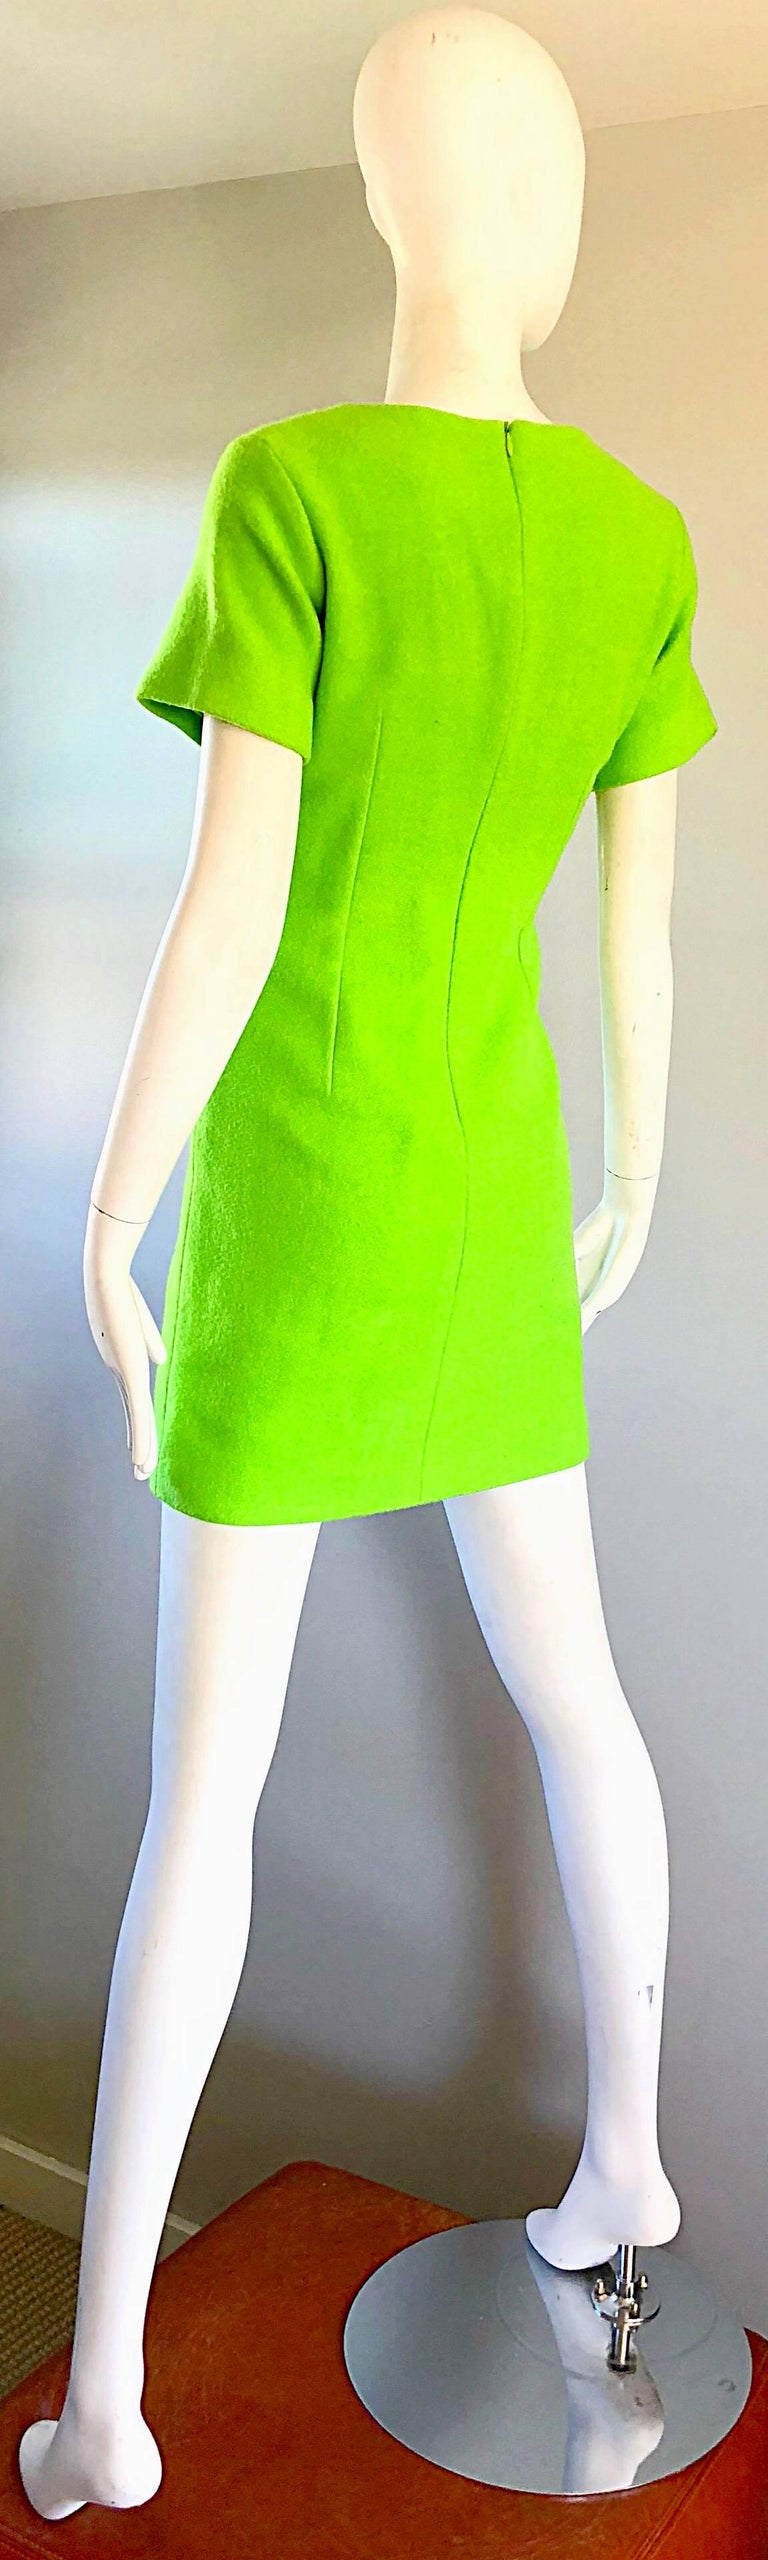 5b3ac232ca 1990s Gianni Versace Neon Lime Green Bodycon Wool Vintage 90s Mini Dress  For Sale 6